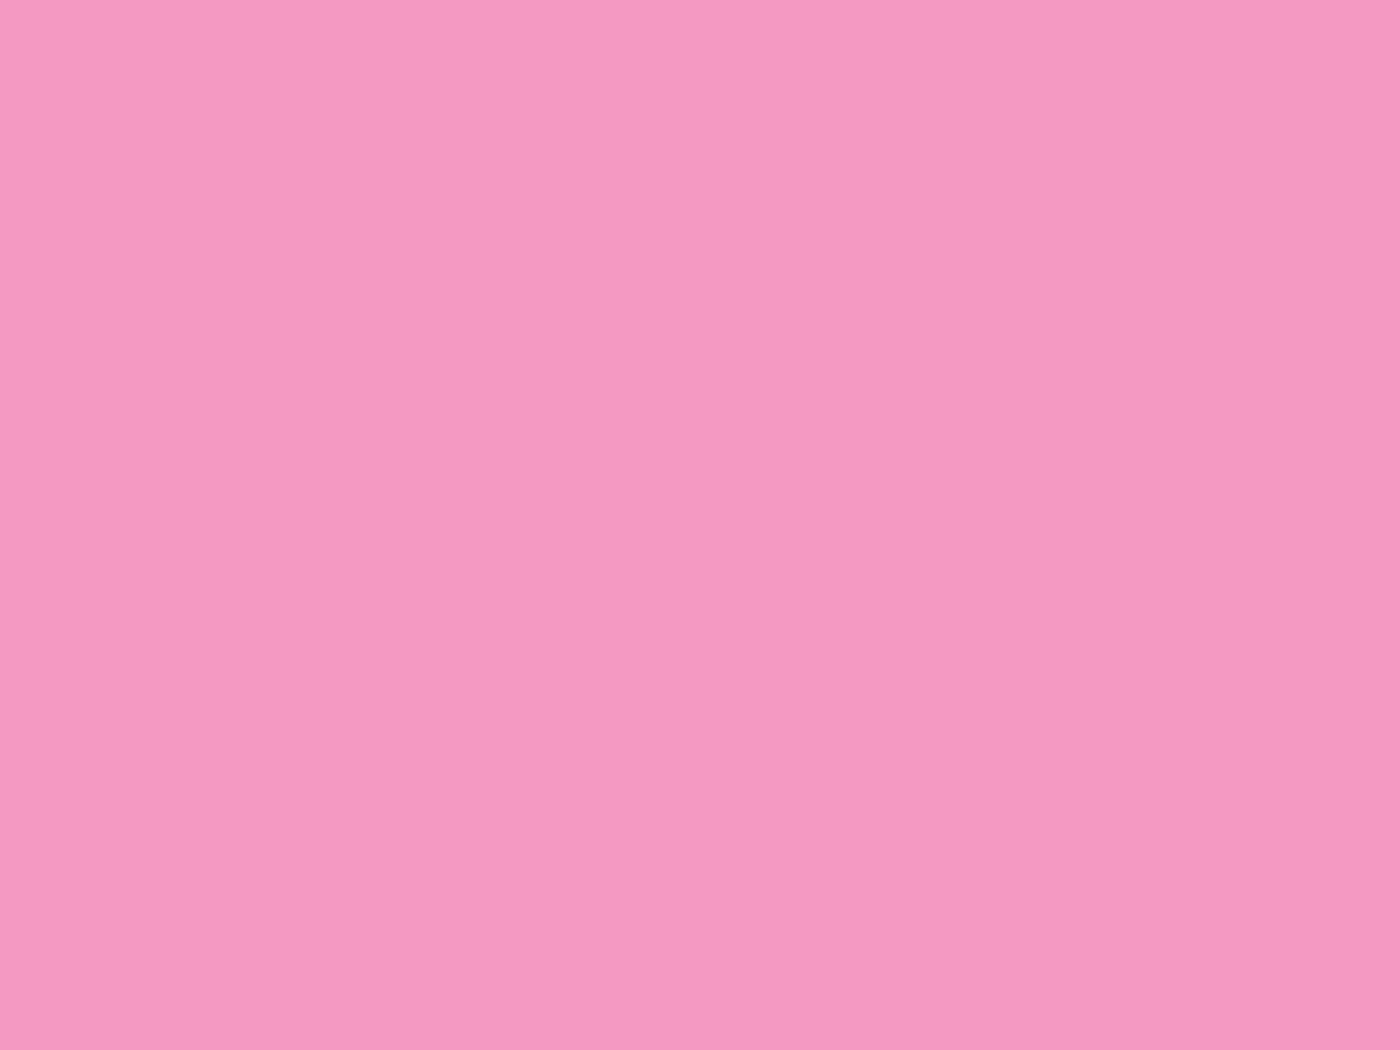 1400x1050 Pastel Magenta Solid Color Background